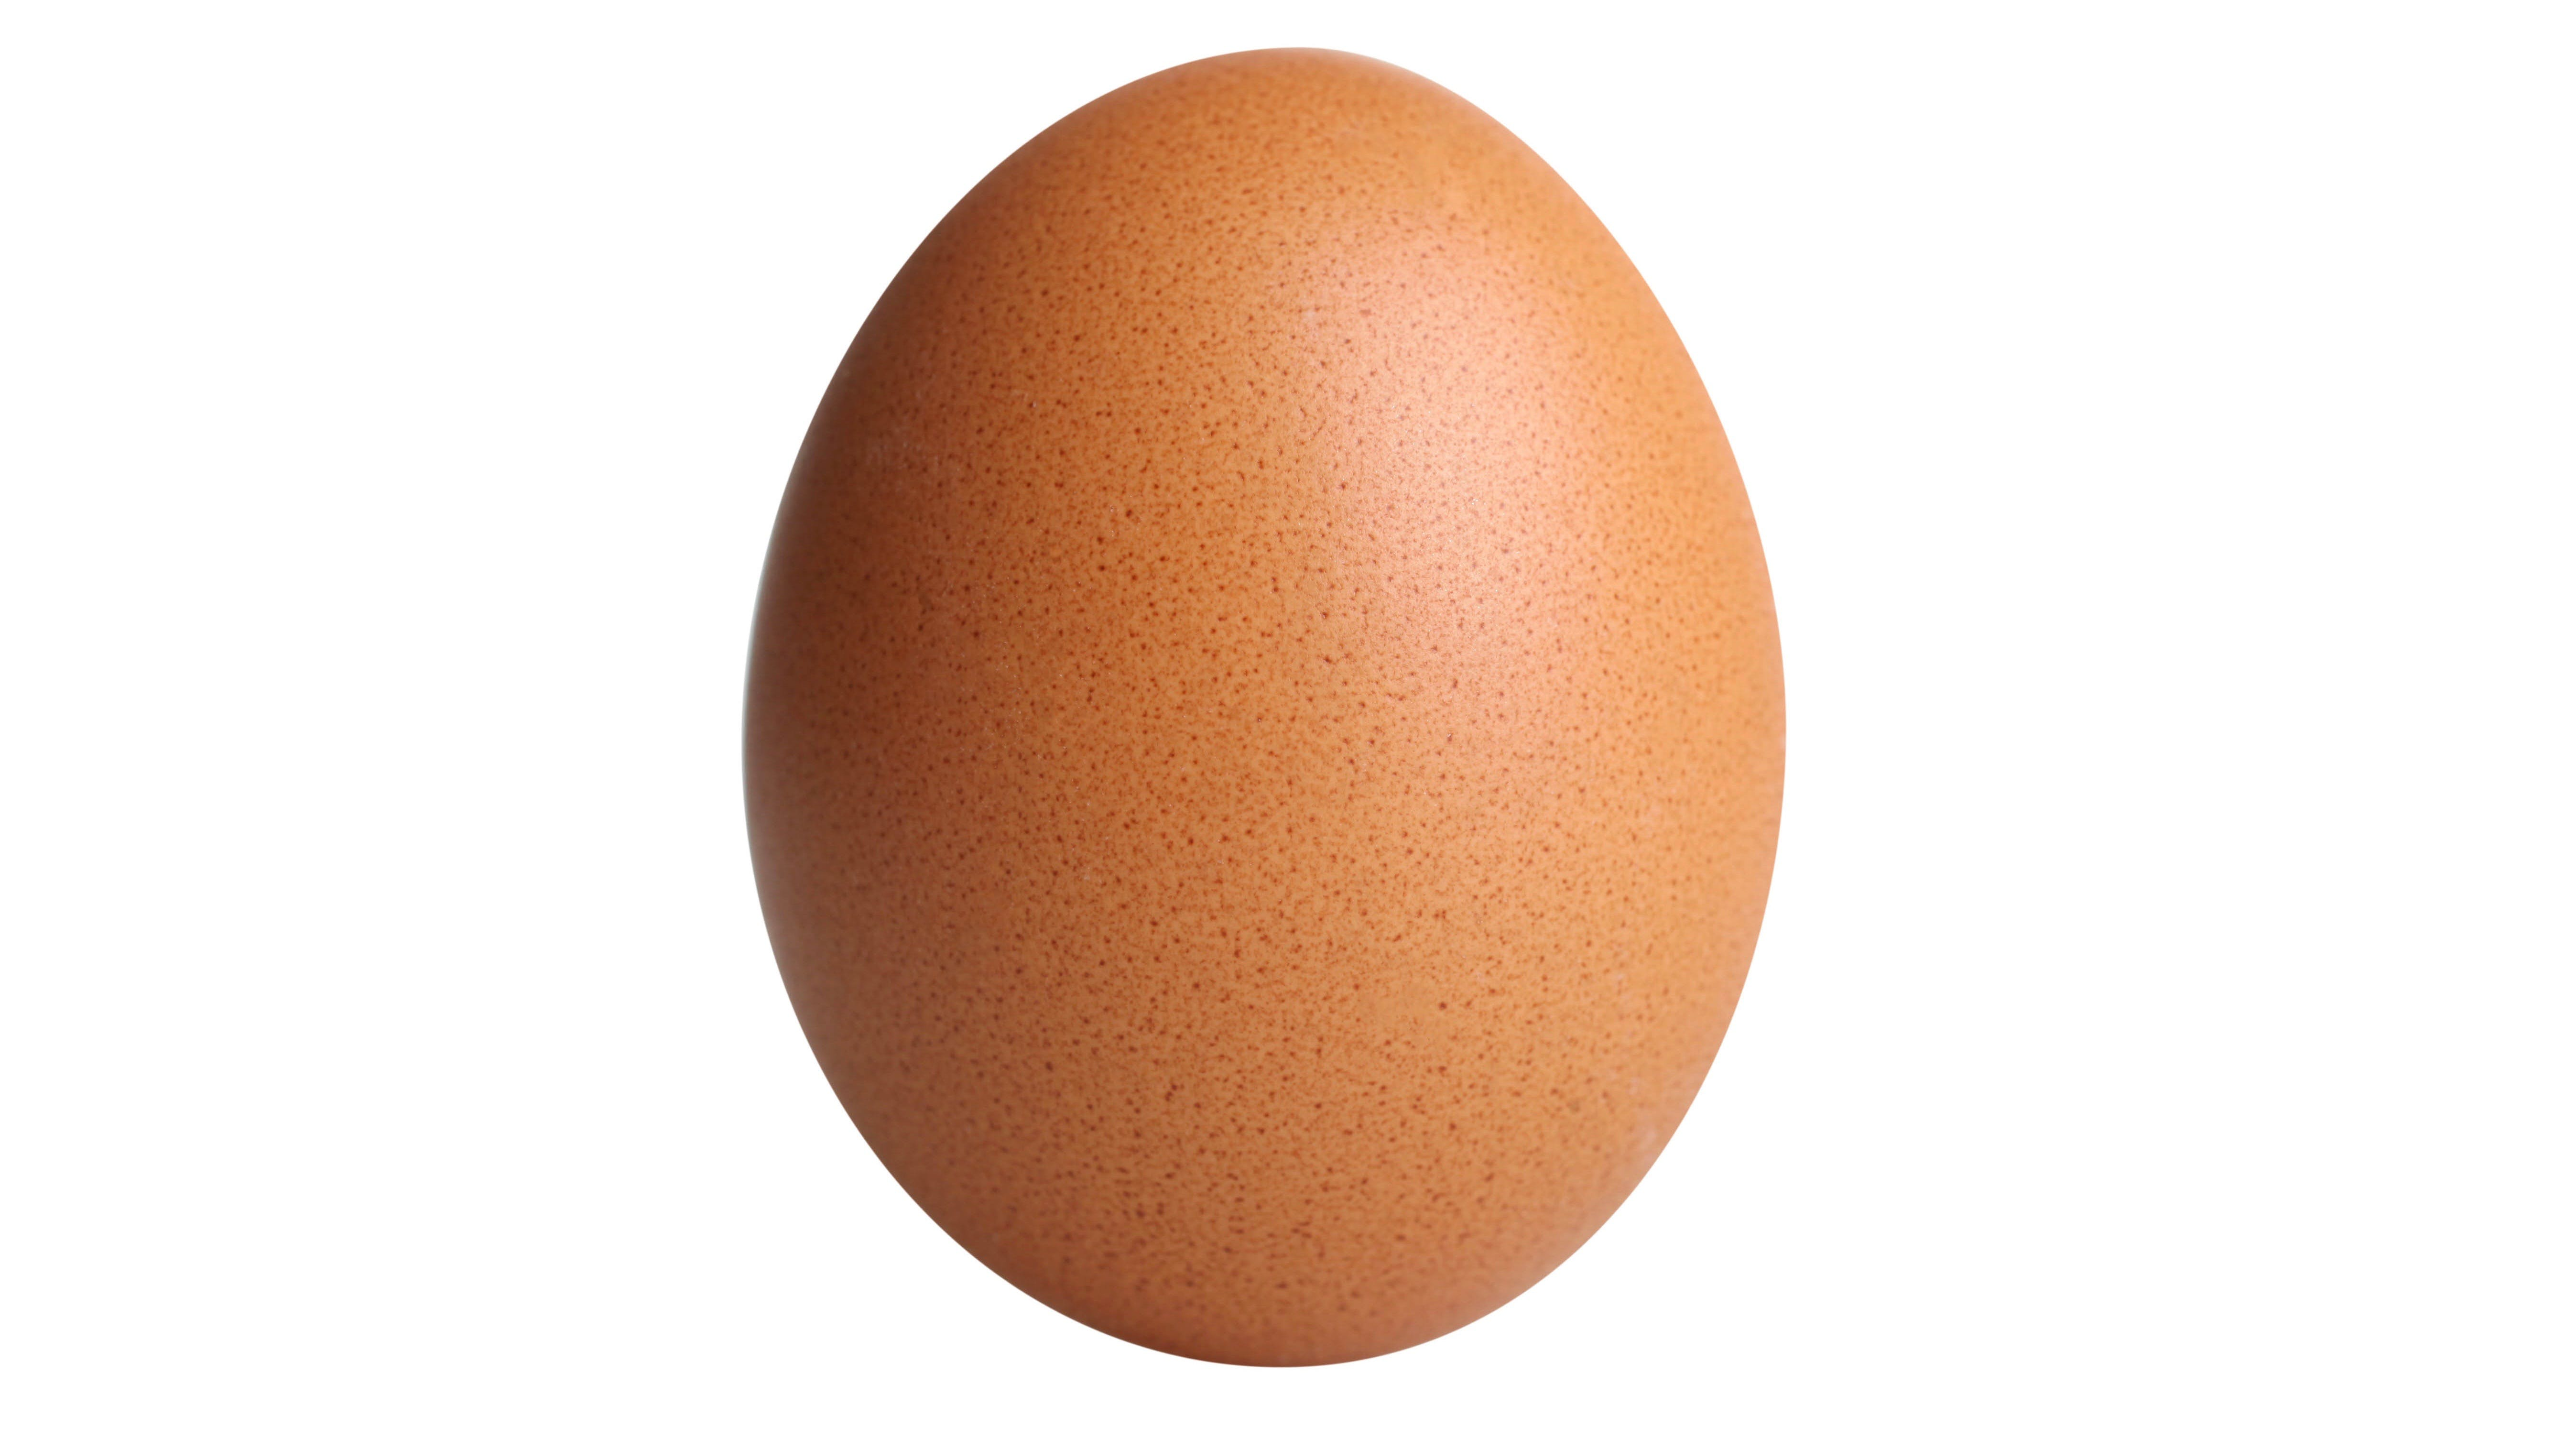 An egg is number one on Instagram